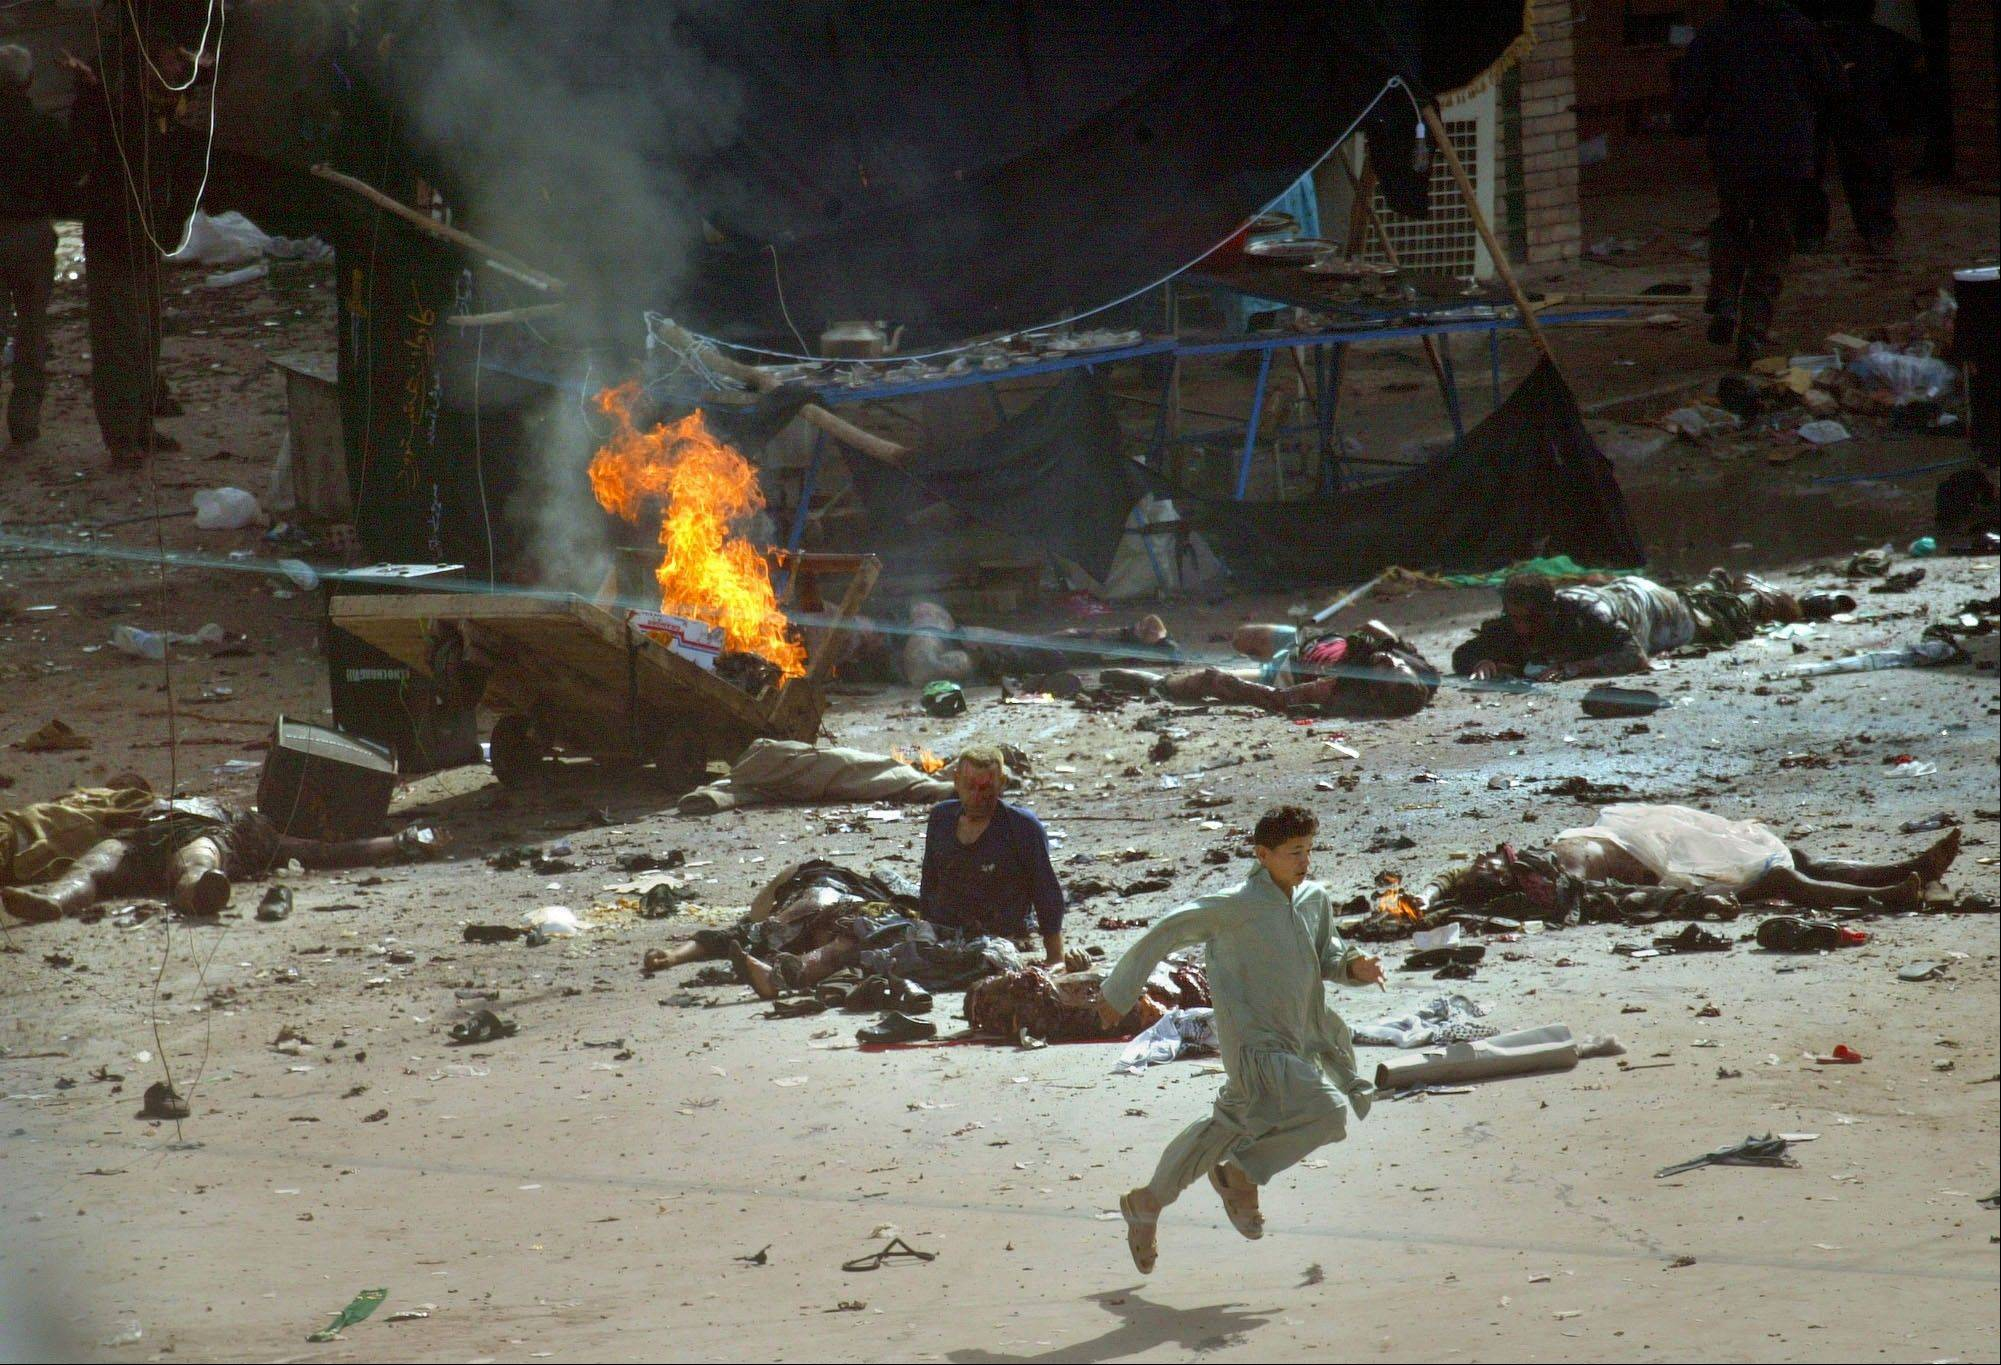 FILE - Moments after the explosions, a youth runs past the victims and burning debris at the site of several bomb blasts in densely-occupied areas during the holy day of Ashoura, a Shiite festival, in the holy city of Karbala, Iraq on Tuesday, March 2, 2004.